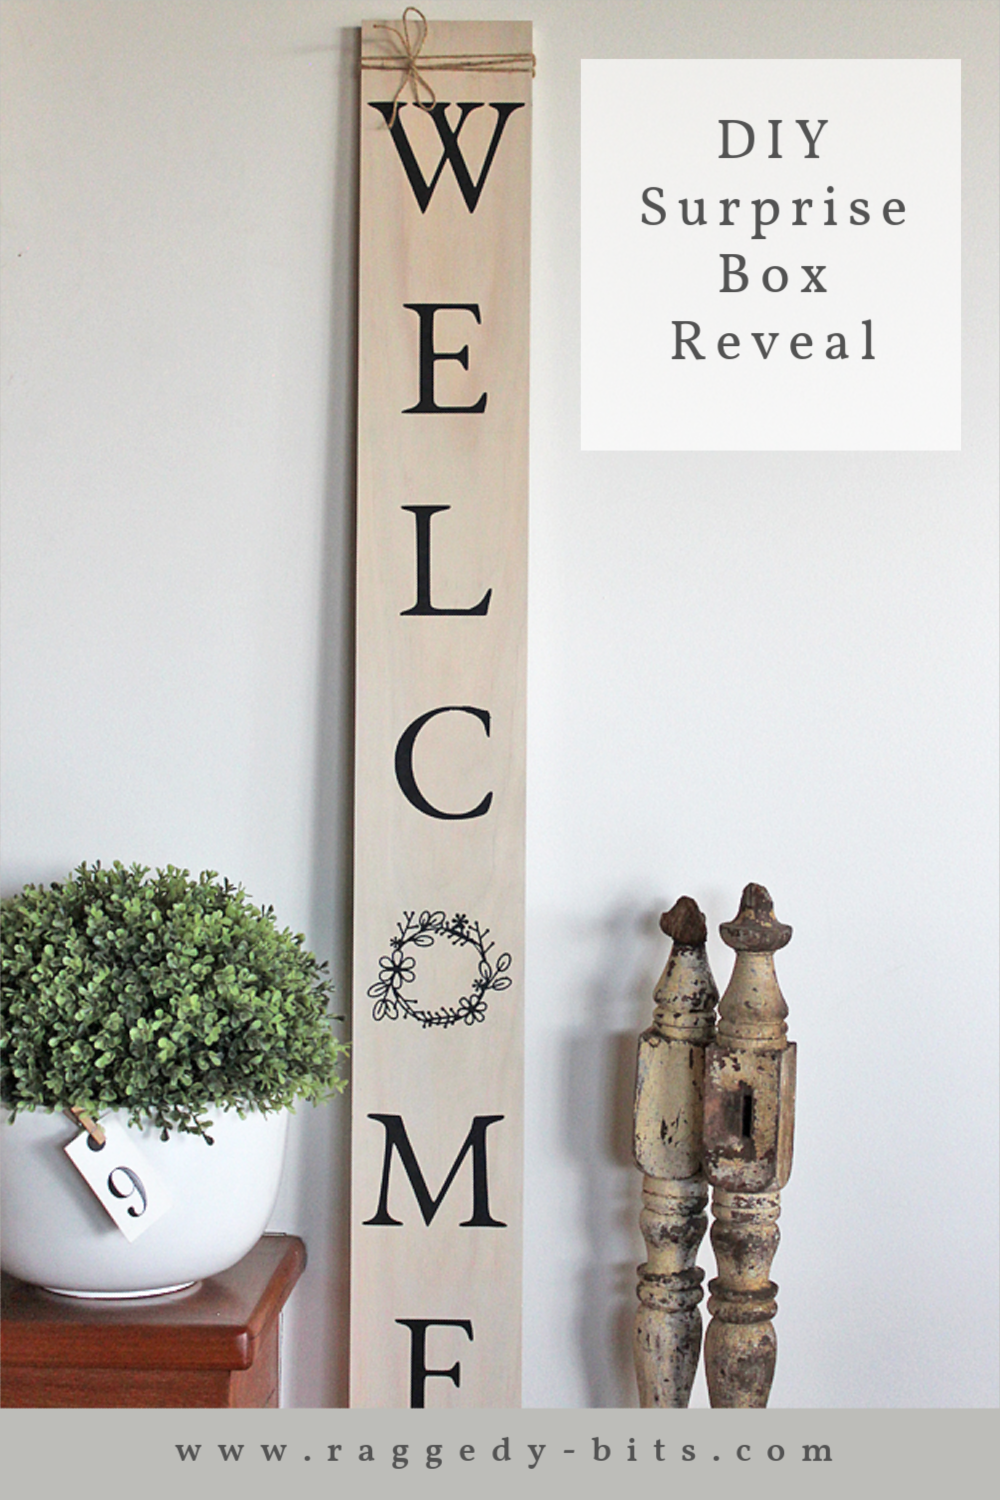 It's that fun time of the month for our Spring Porch Surprise Box Reveal. Come and see what our creatives have been busy creating this month | www.raggedy-bits.com | #raggedybits #diy #surprise #box #spring #porch #vintage #farmhouse #fusionmineralpaint